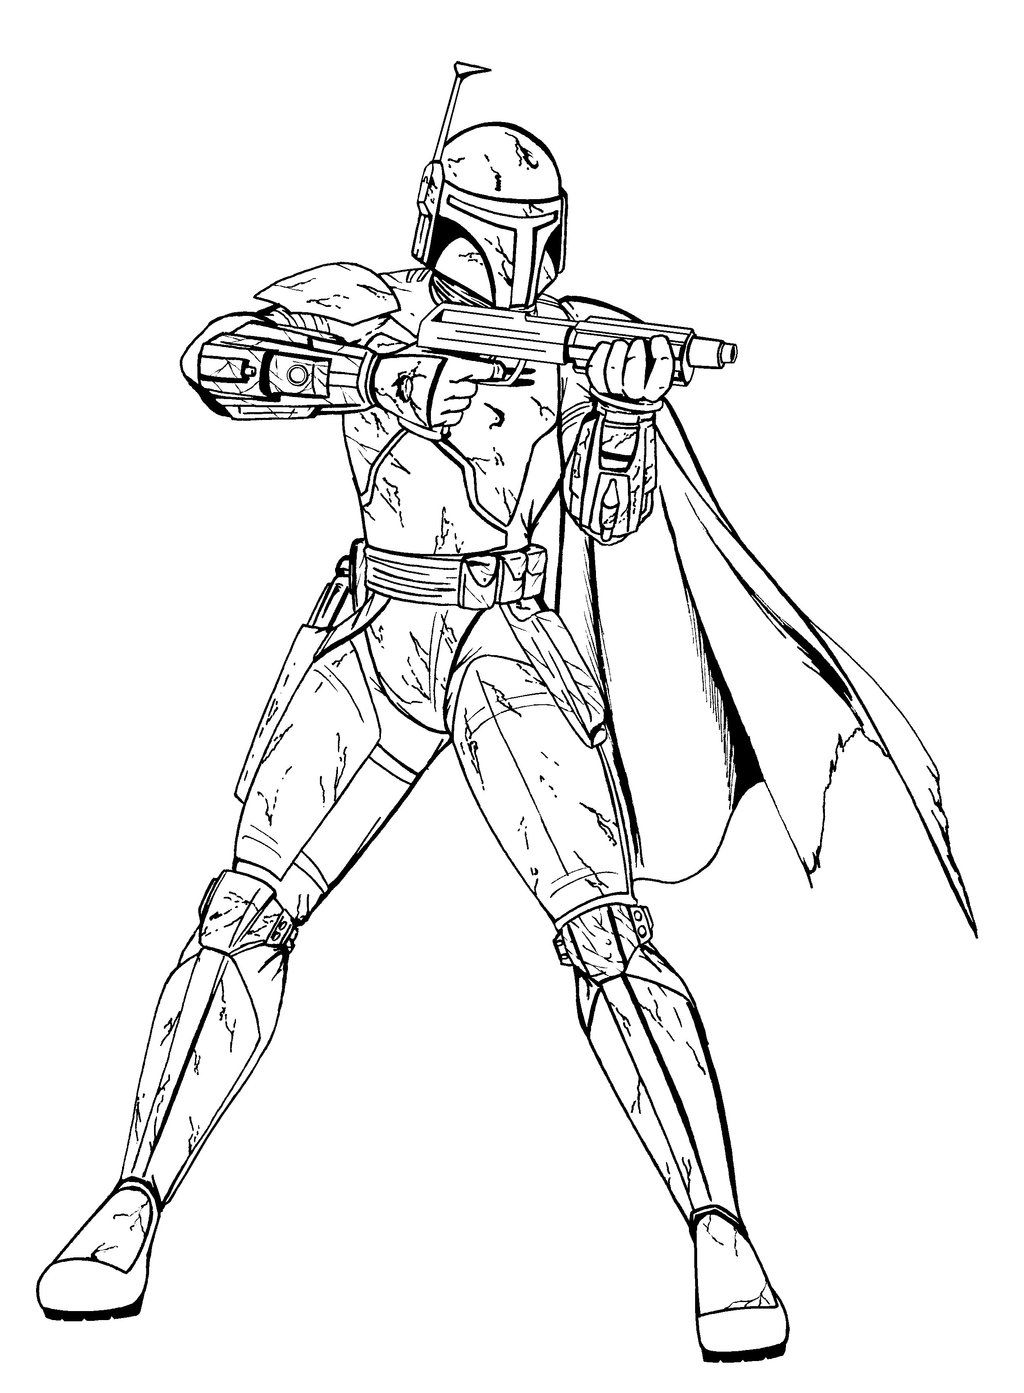 star wars coloring images star wars 7 coloring pages free download on clipartmag wars coloring images star